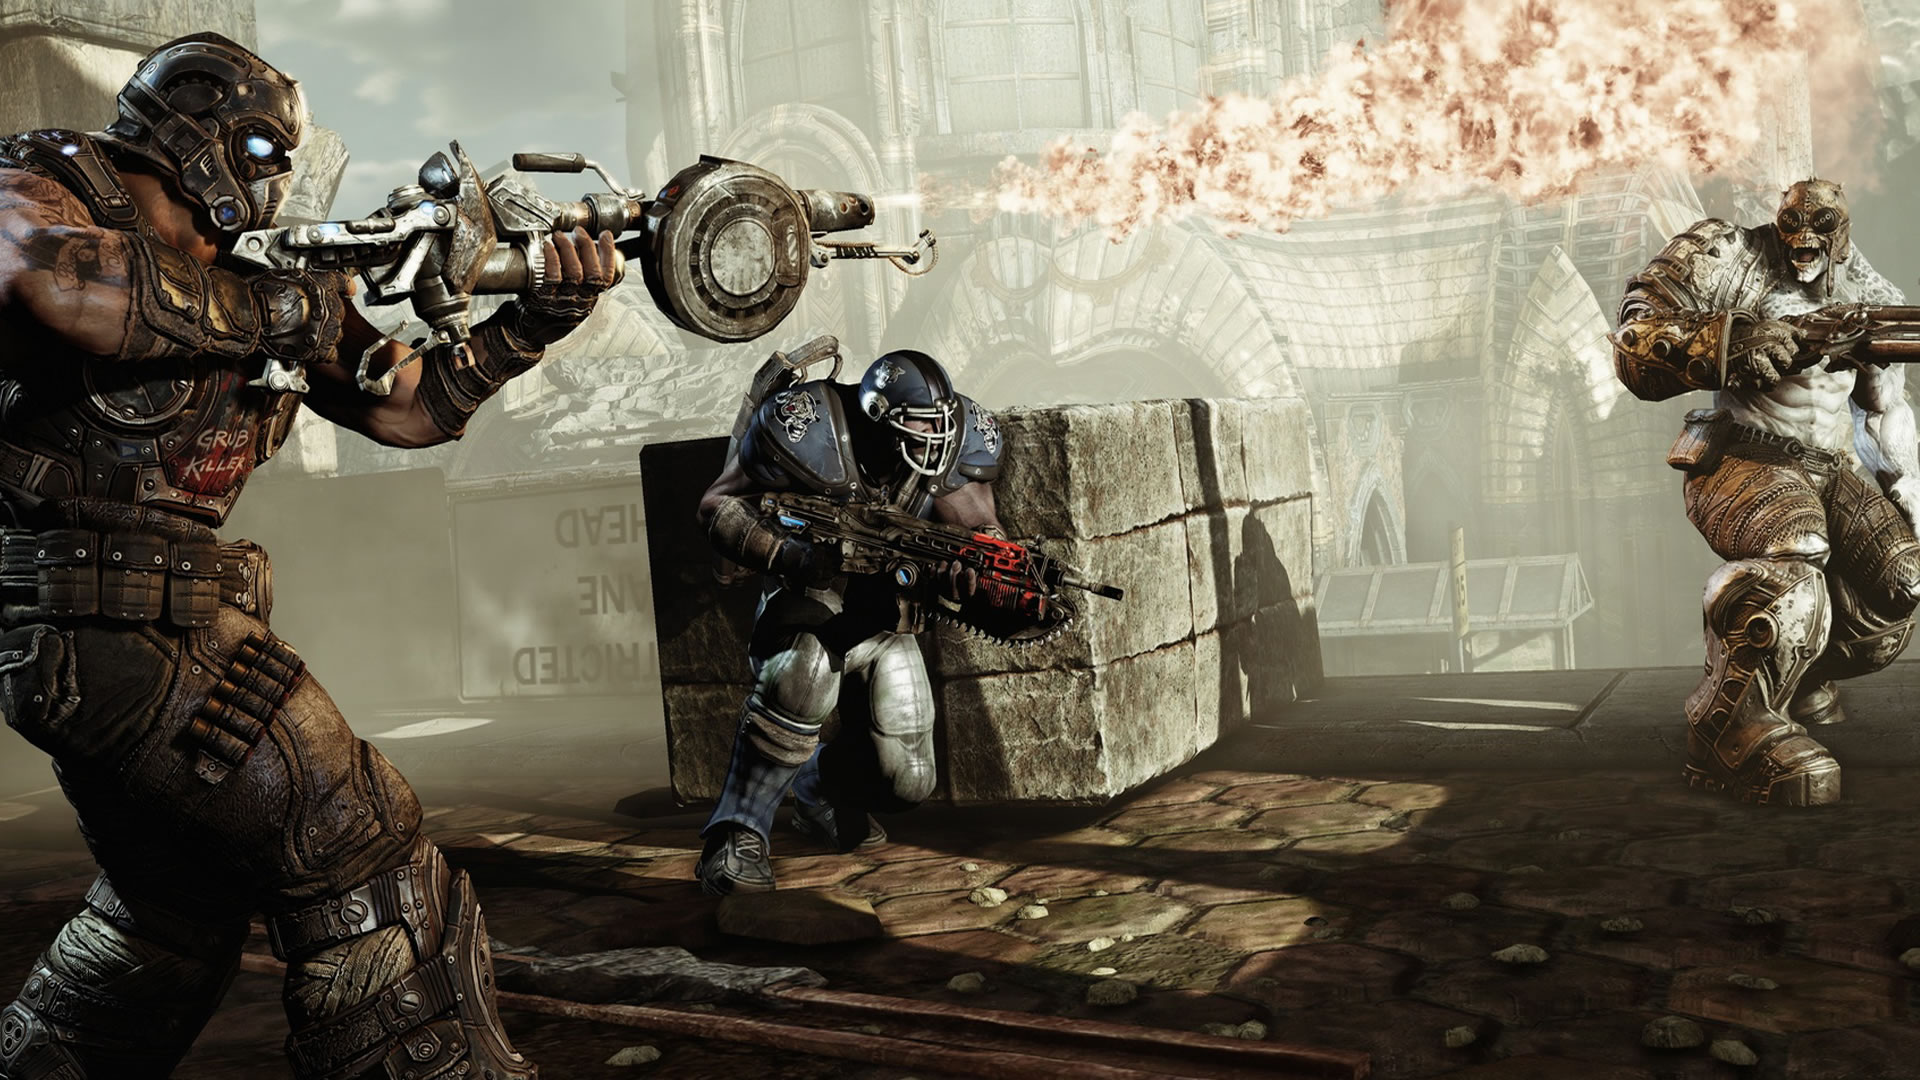 gears of war backgrounds A2